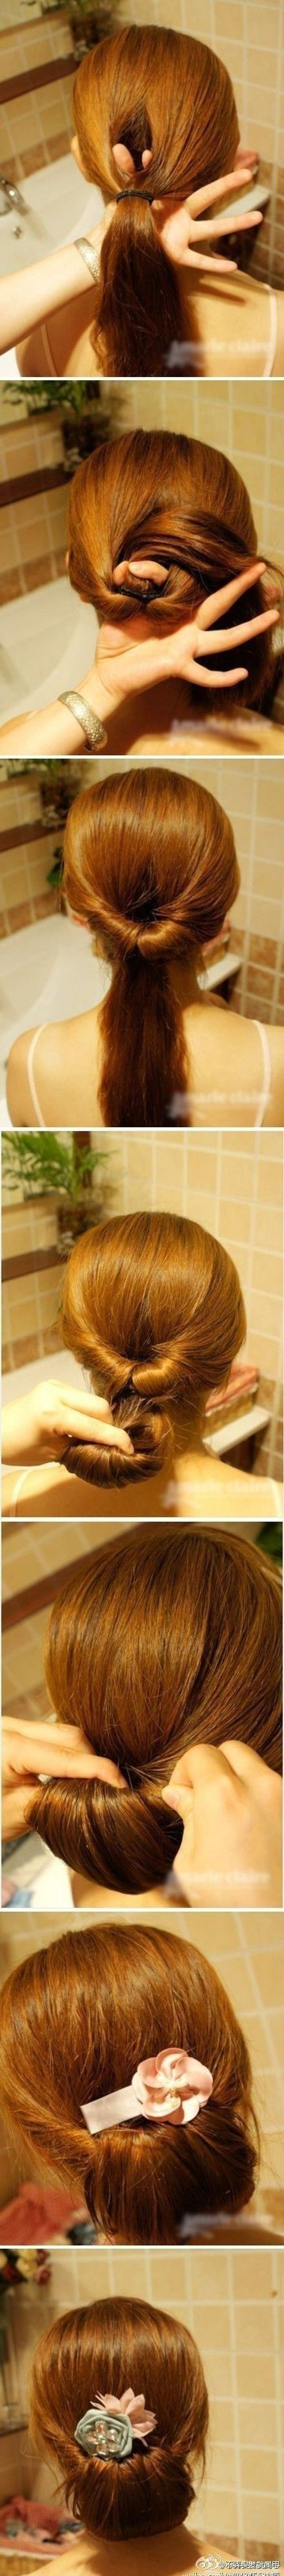 how-to-guide-to-hairstyles-27-pics_16